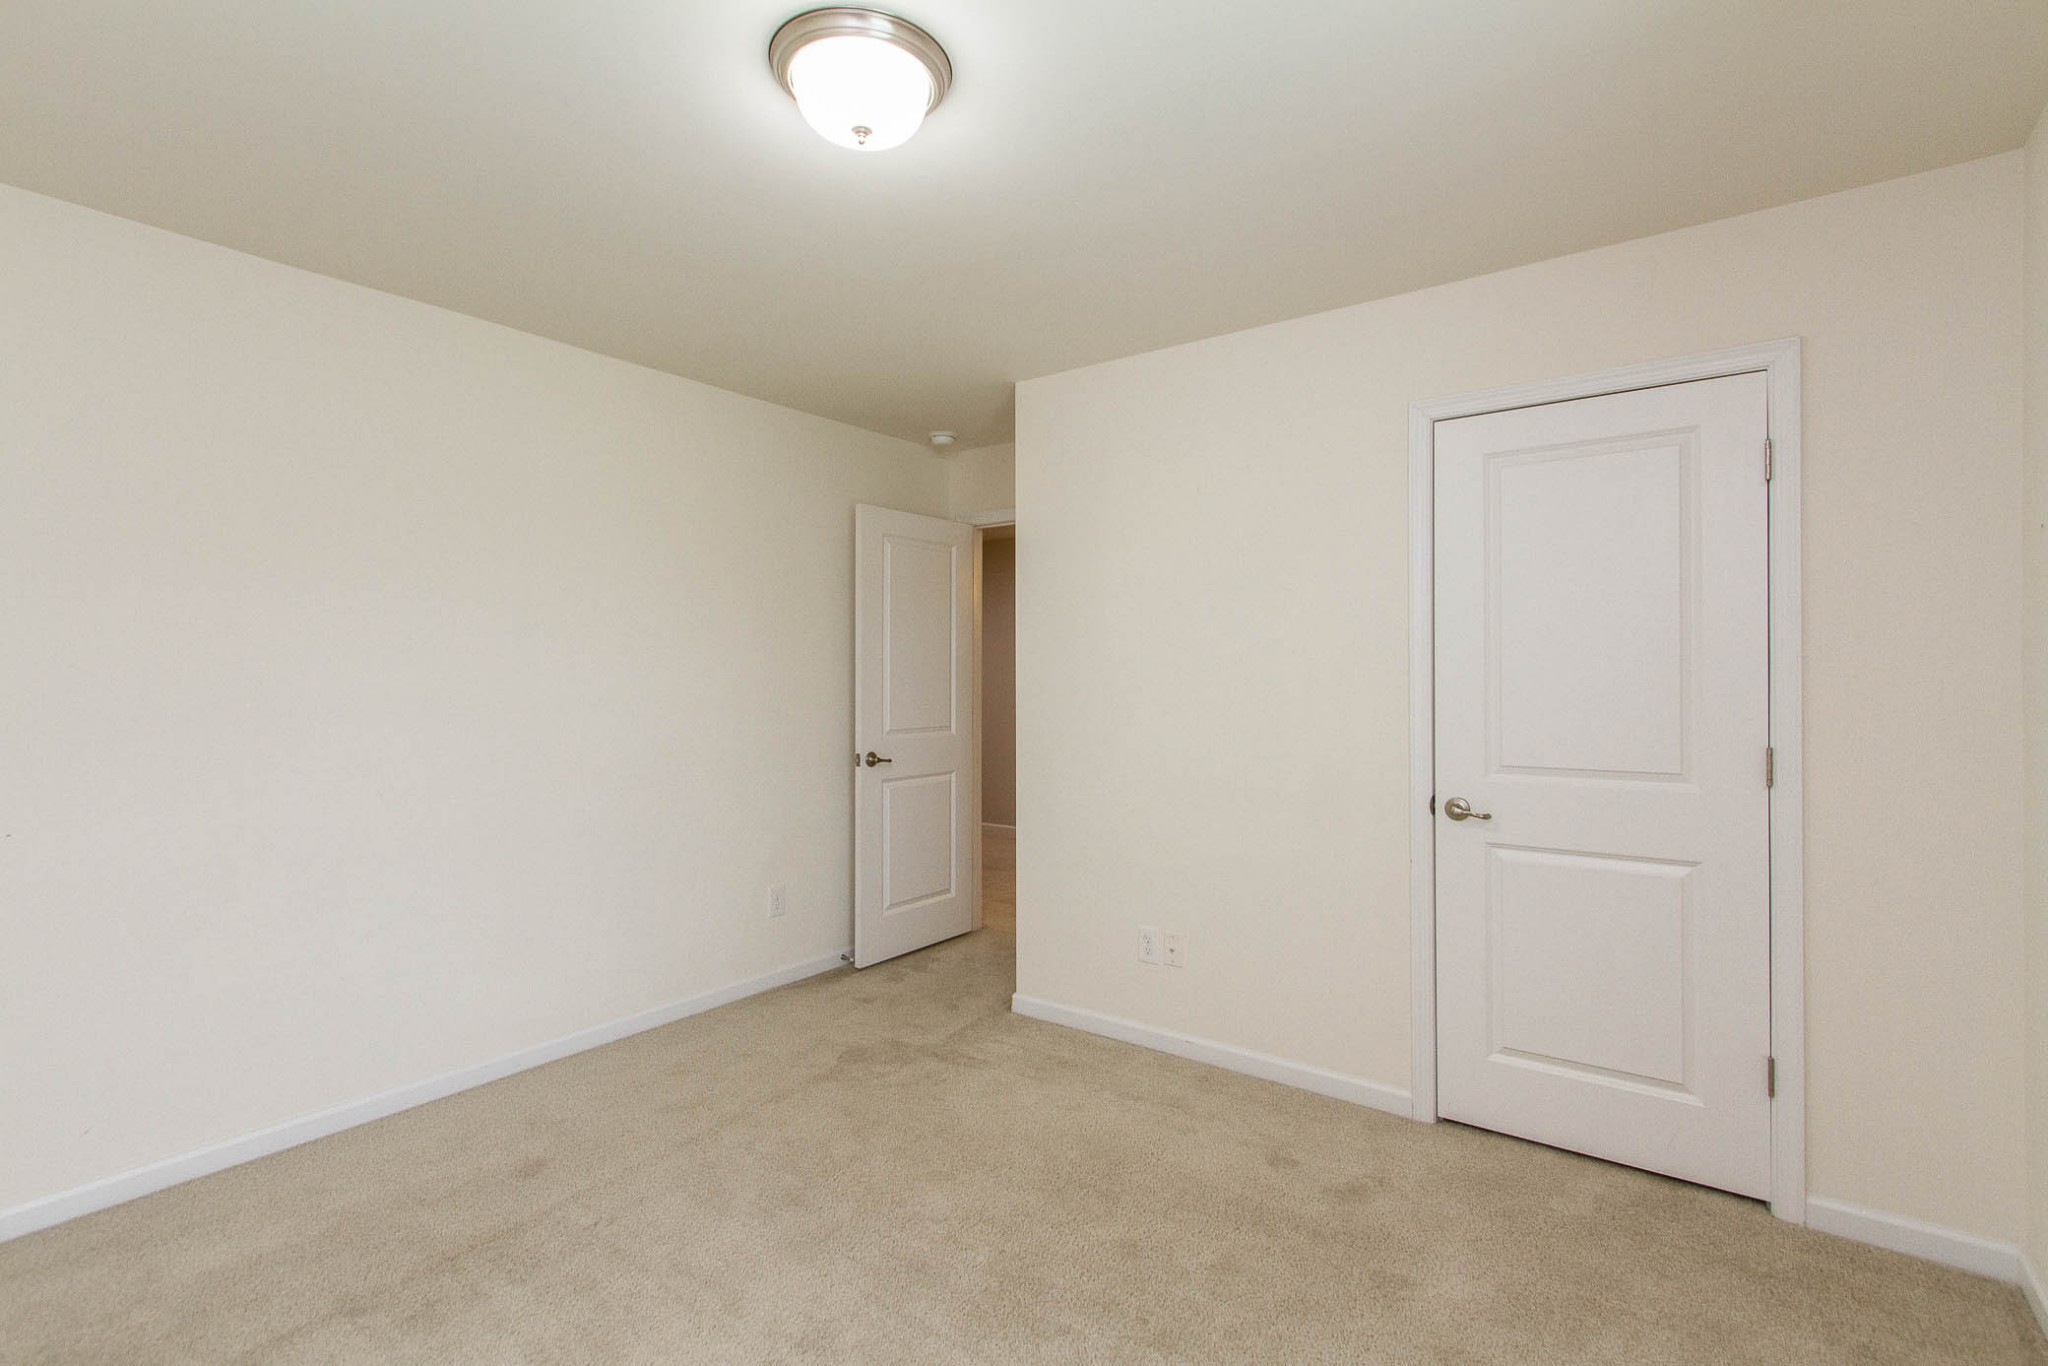 1031 New Eanes Dr Property Photo 36